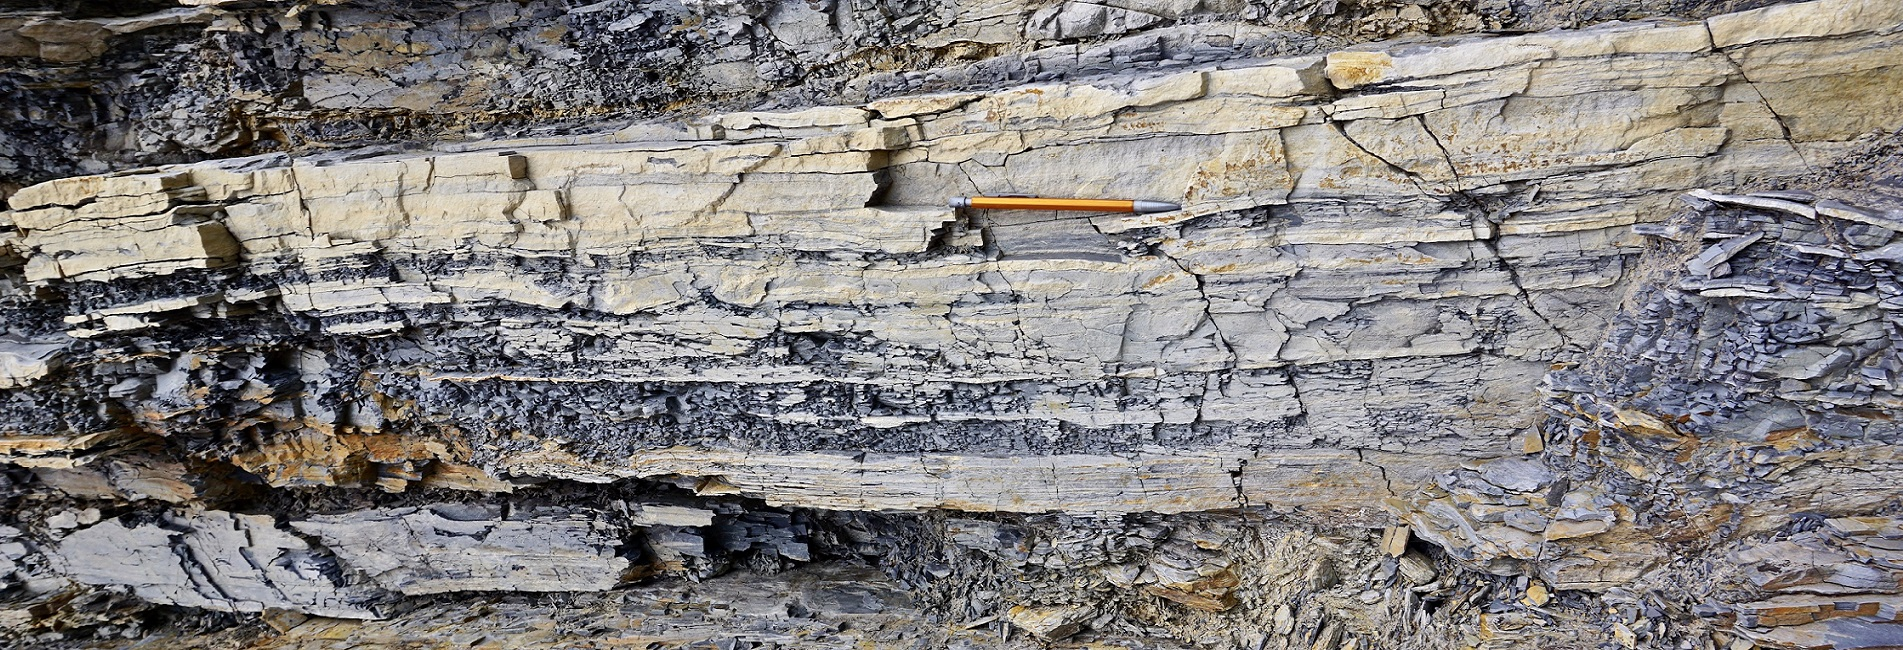 how to describe shale core